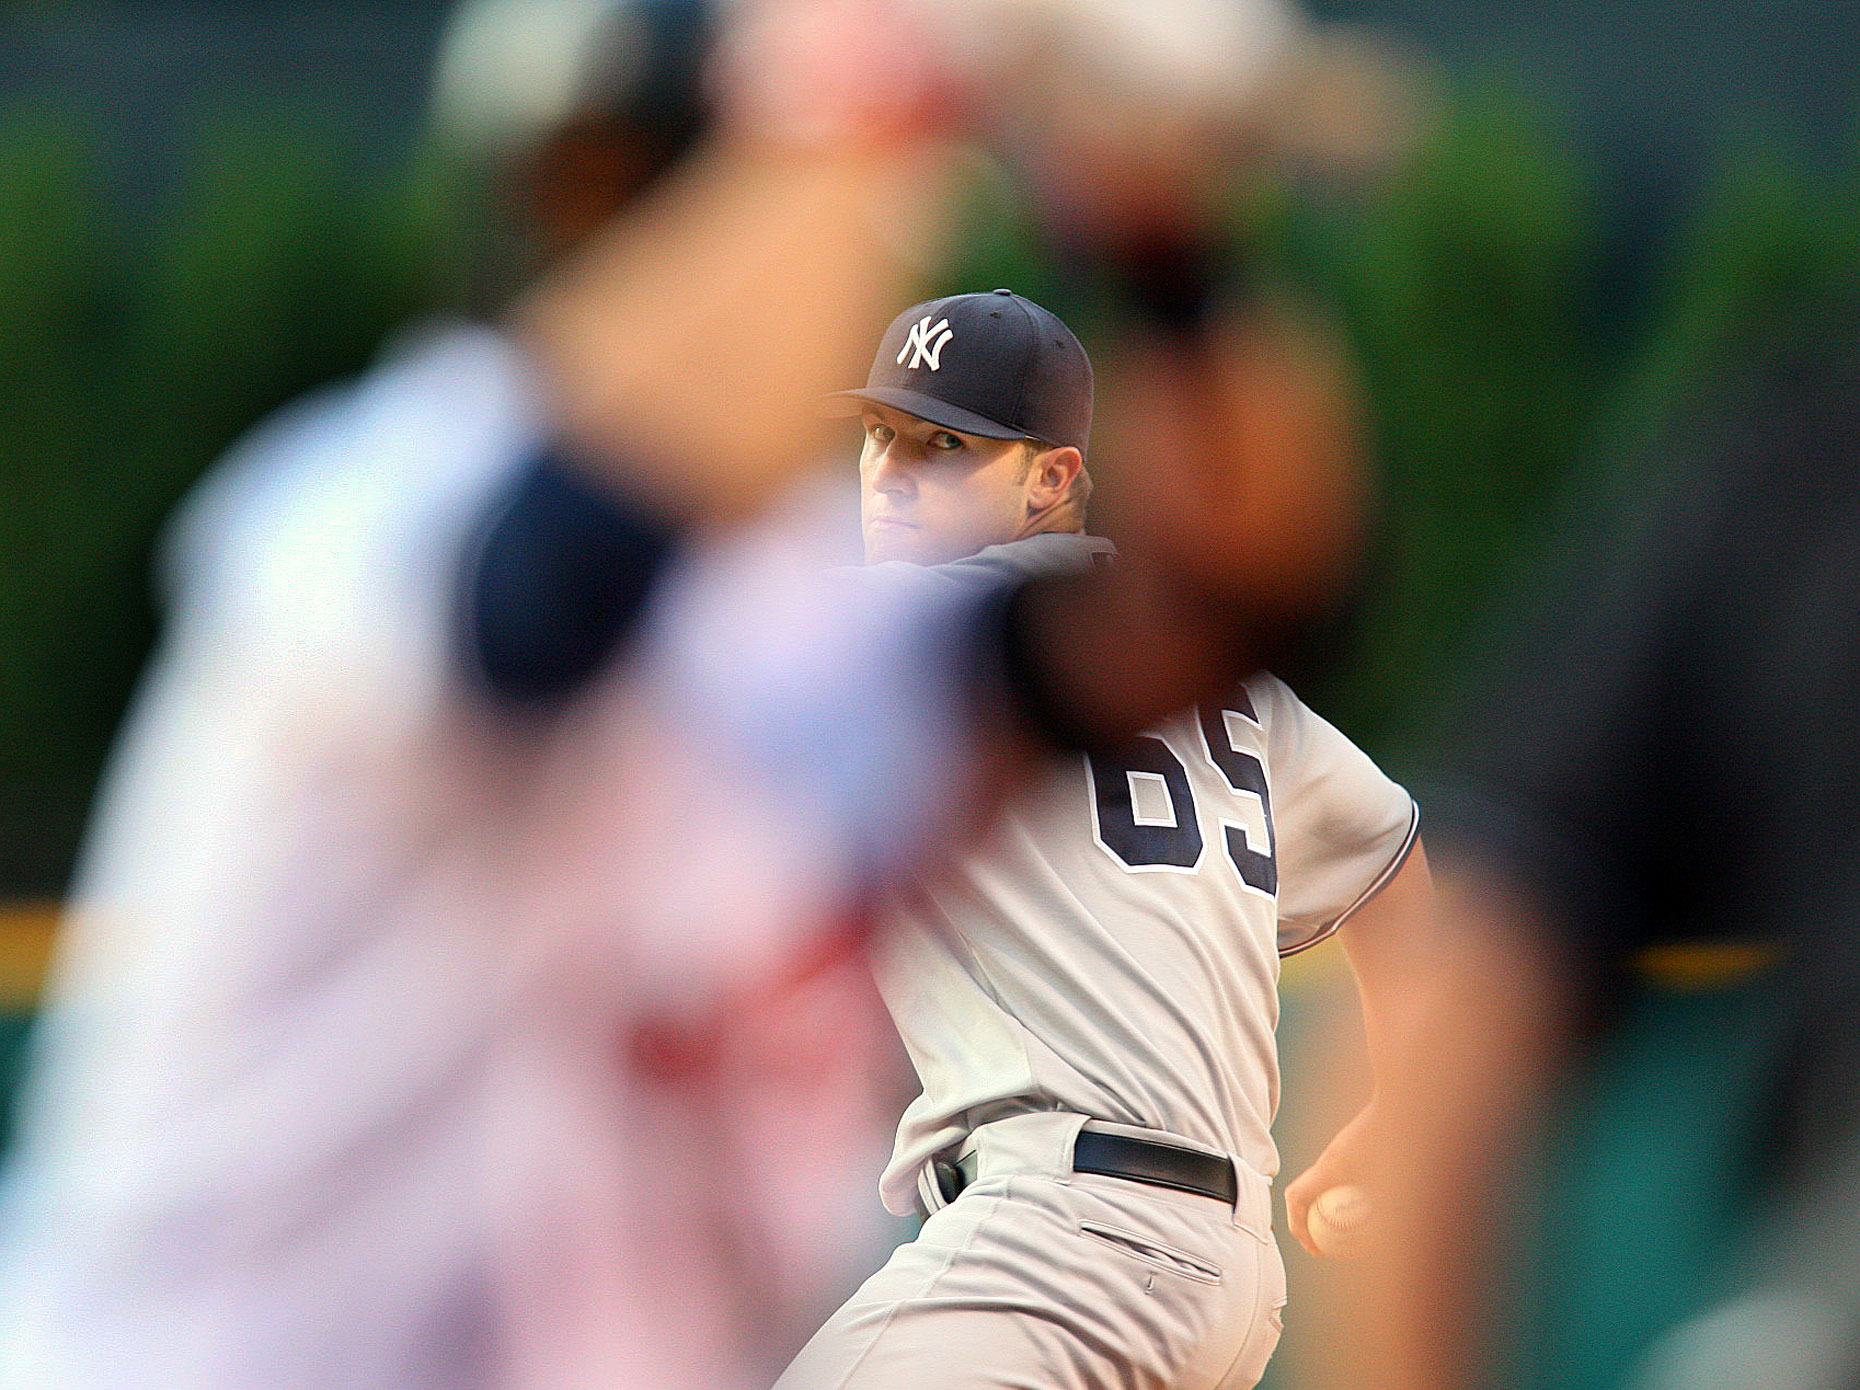 Yankee pitcher Phillip Hughes is framed by the batter during a game in Cleveland.